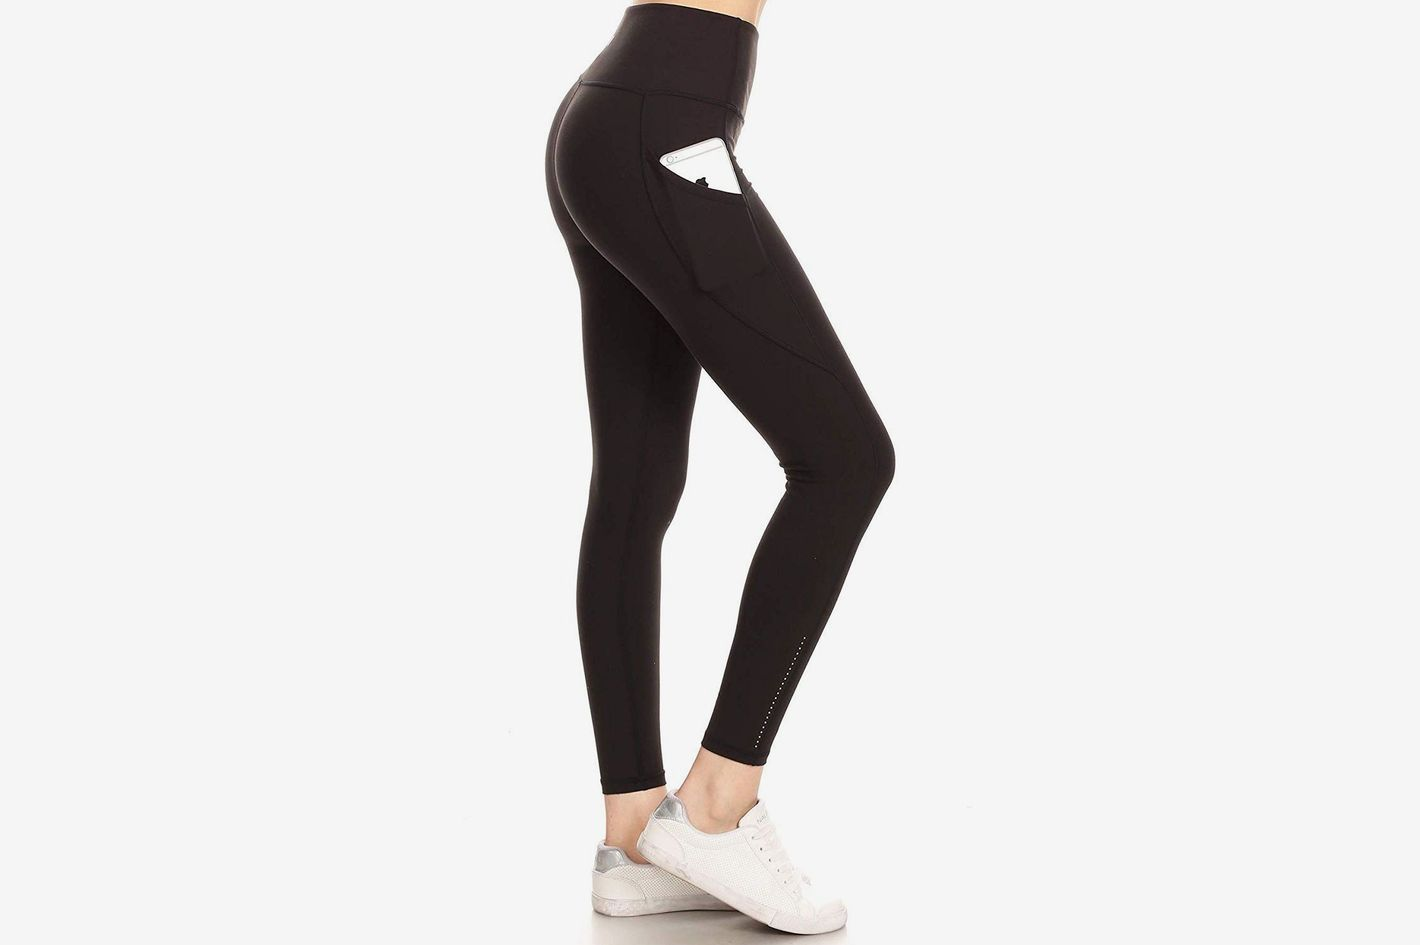 67da7243378f0 Leggings Depot High Waisted Leggings